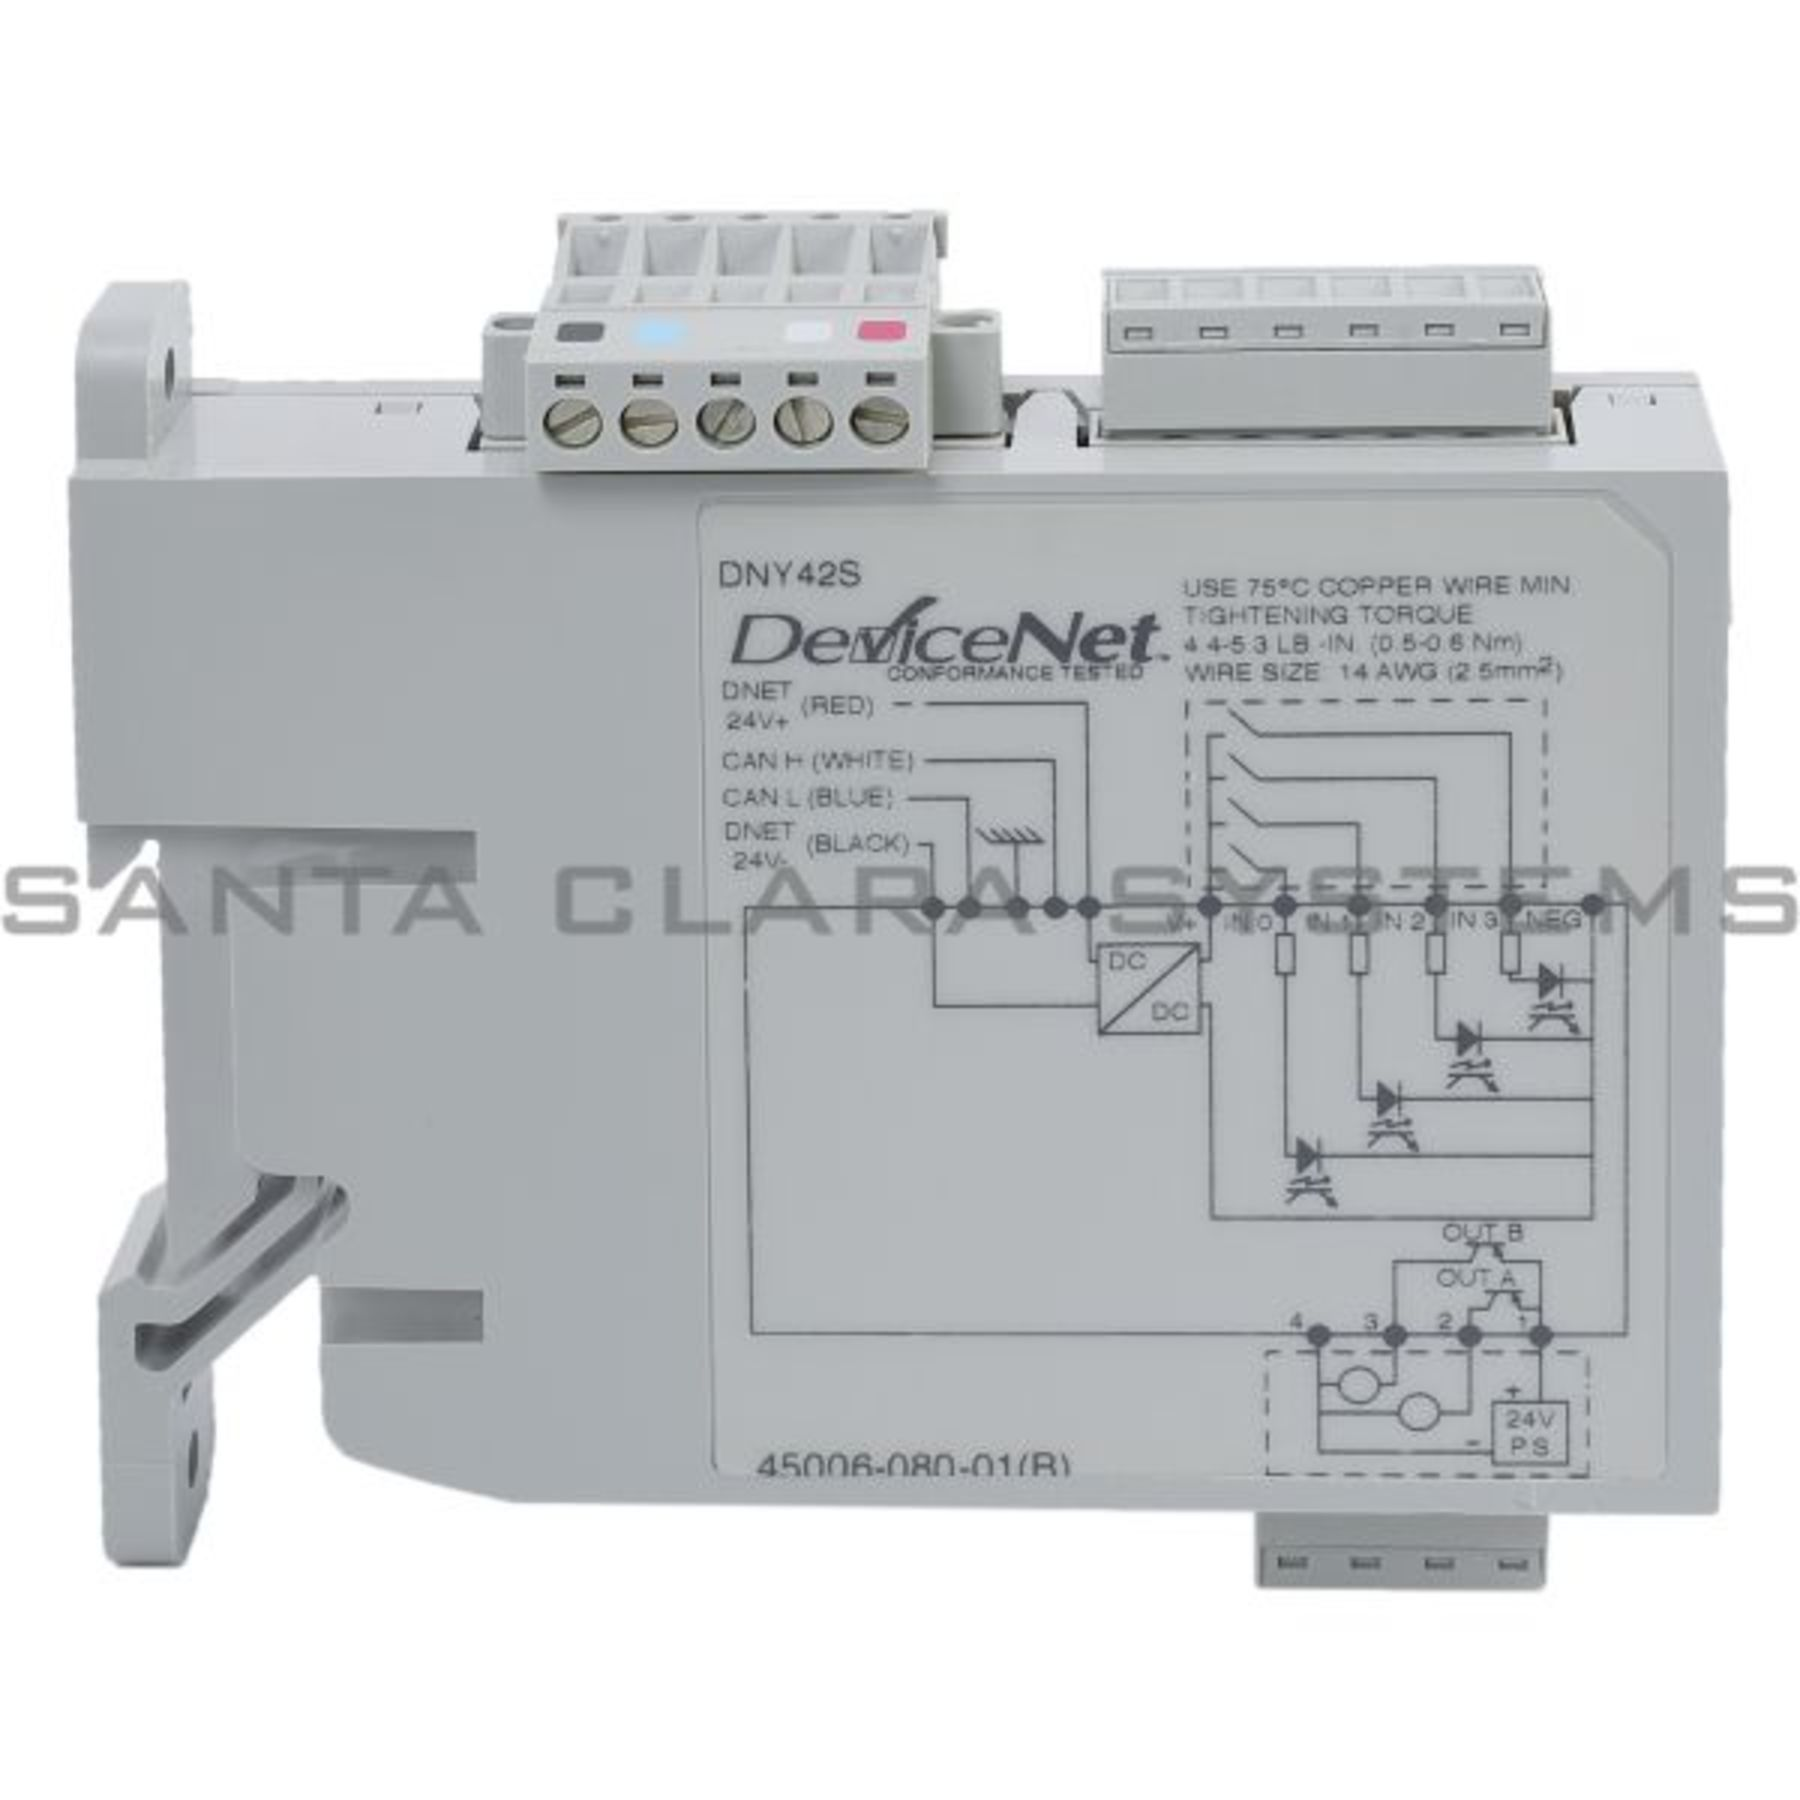 100-DNY42S Contactor In-Stock. Ships Today - Santa Clara Systems on magnetic contactor diagram, contactor relay, contactor exploded view, contactor switch, push button start stop diagram, reverse polarity relay diagram, contactor operation diagram, contactor coil, logic flow diagram, carrier furnace parts diagram, generac transfer switch diagram, circuit diagram, 6 prong toggle switch diagram, 3 position selector switch diagram, electrical contactor diagram, contactor parts, single phase reversing contactor diagram, abortion diagram, kitchen stoves and ovens diagram, mechanically held lighting contactor diagram,